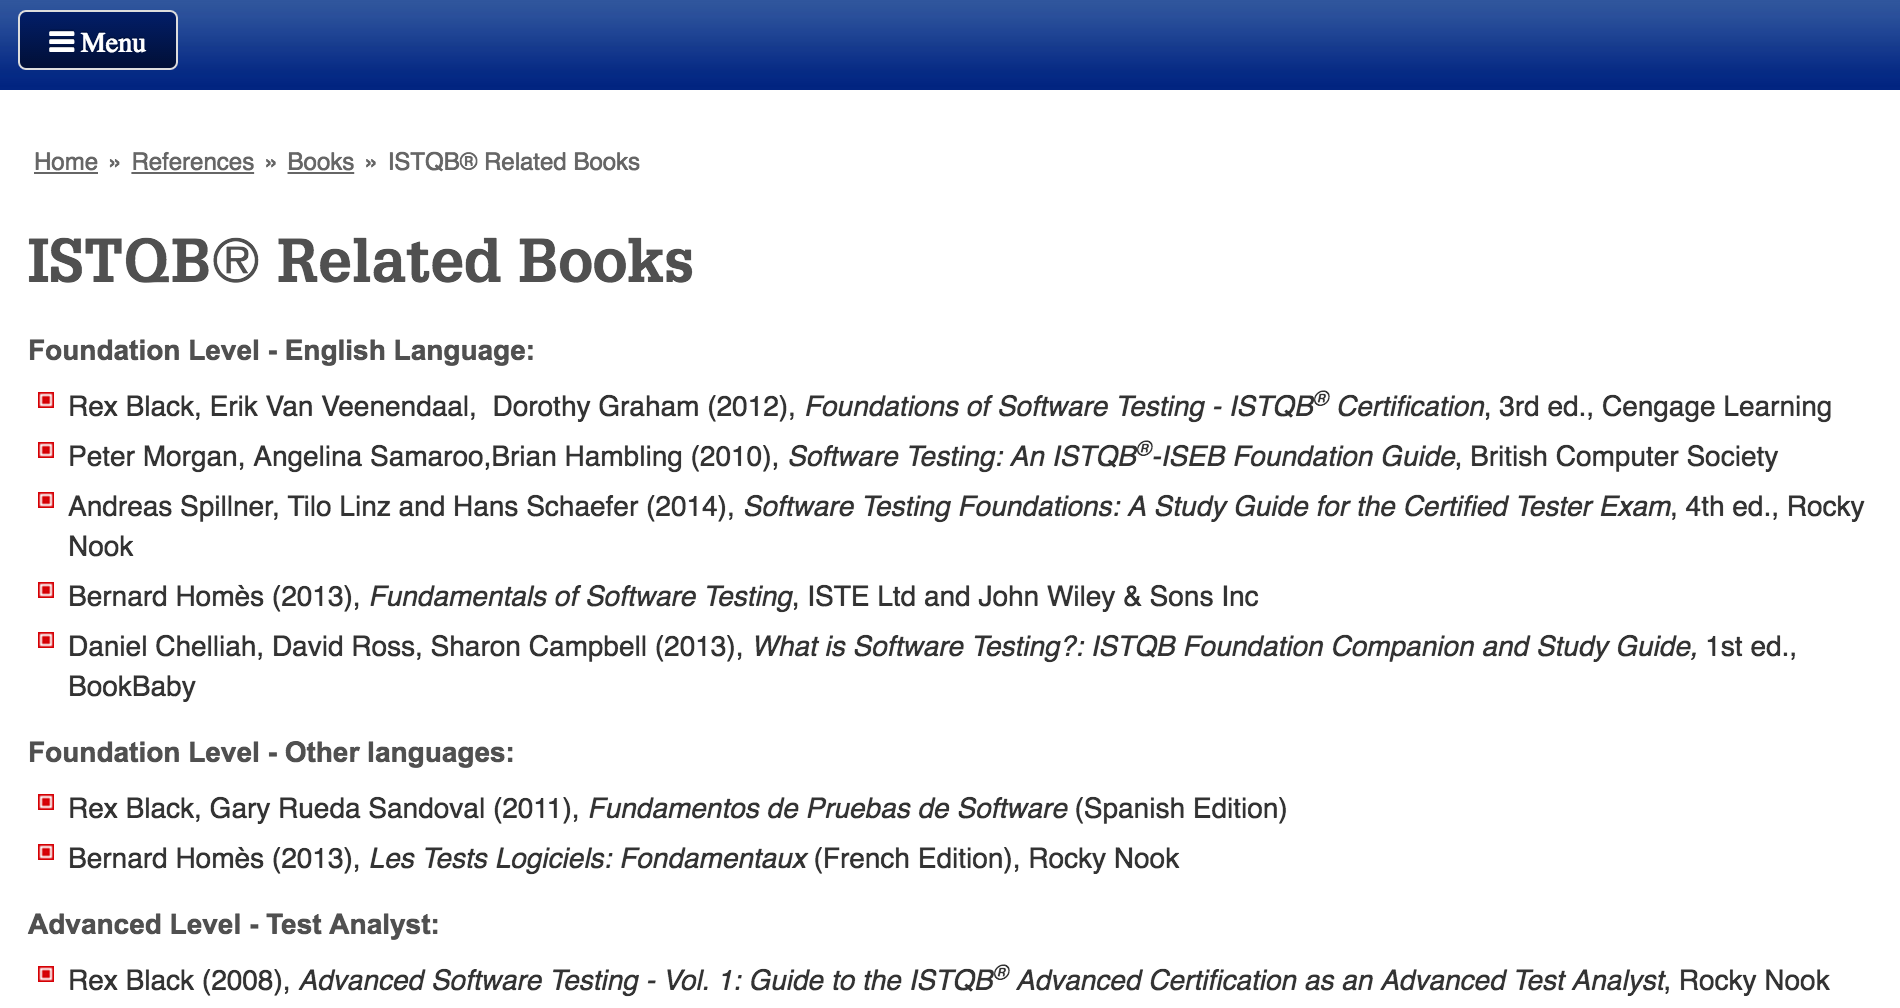 ISTQB Related Books